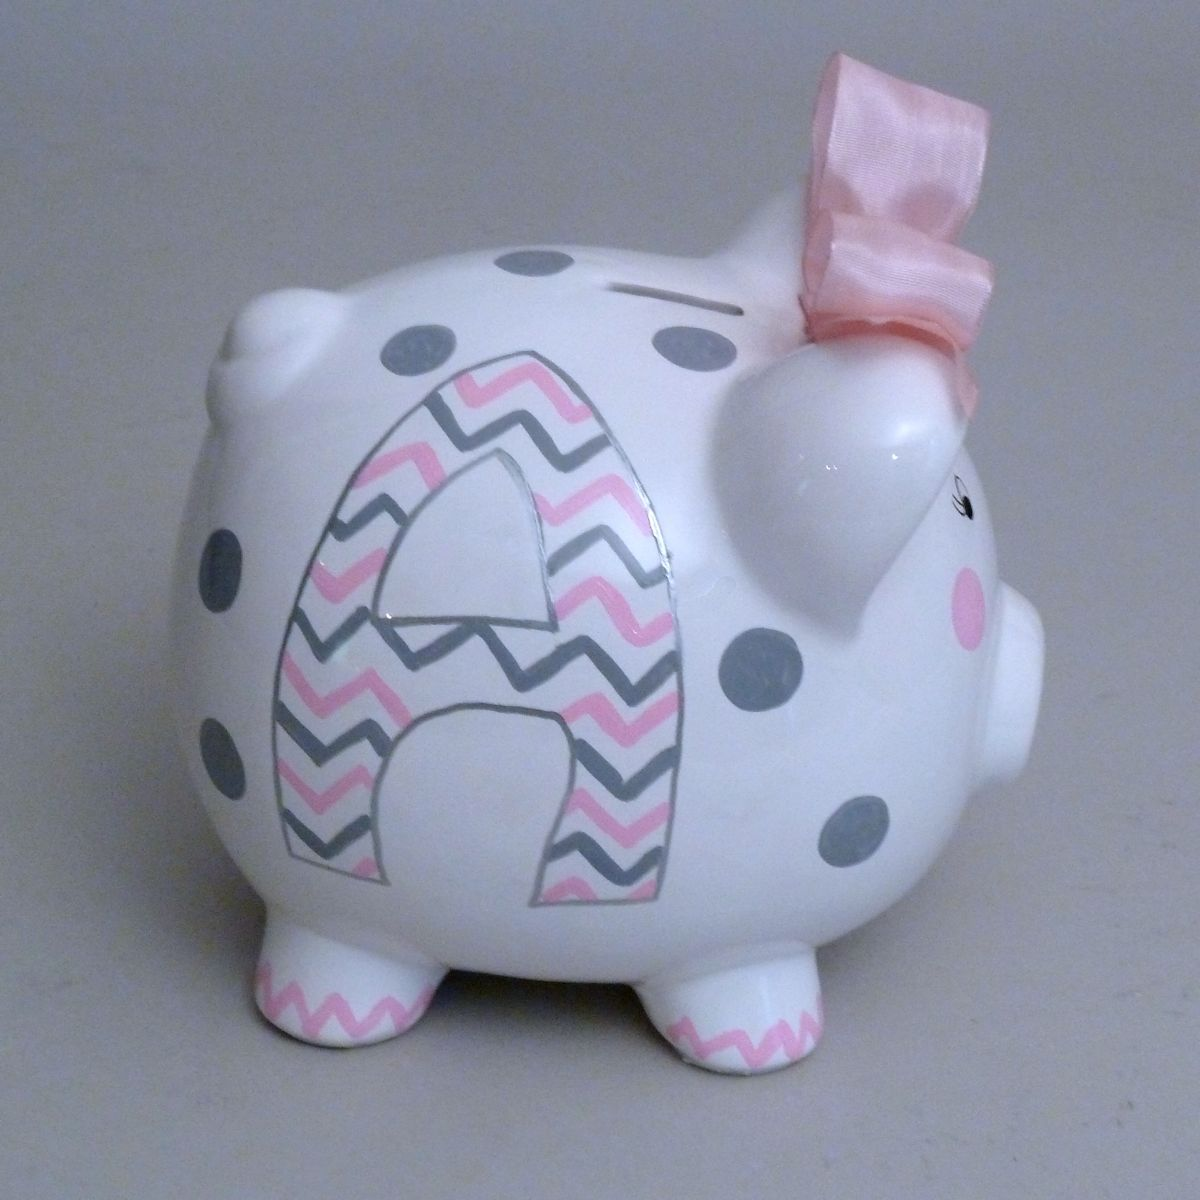 Piggy Bank Idea Large Girly Chevron Piggy Bank 2 5 This Little Piggy